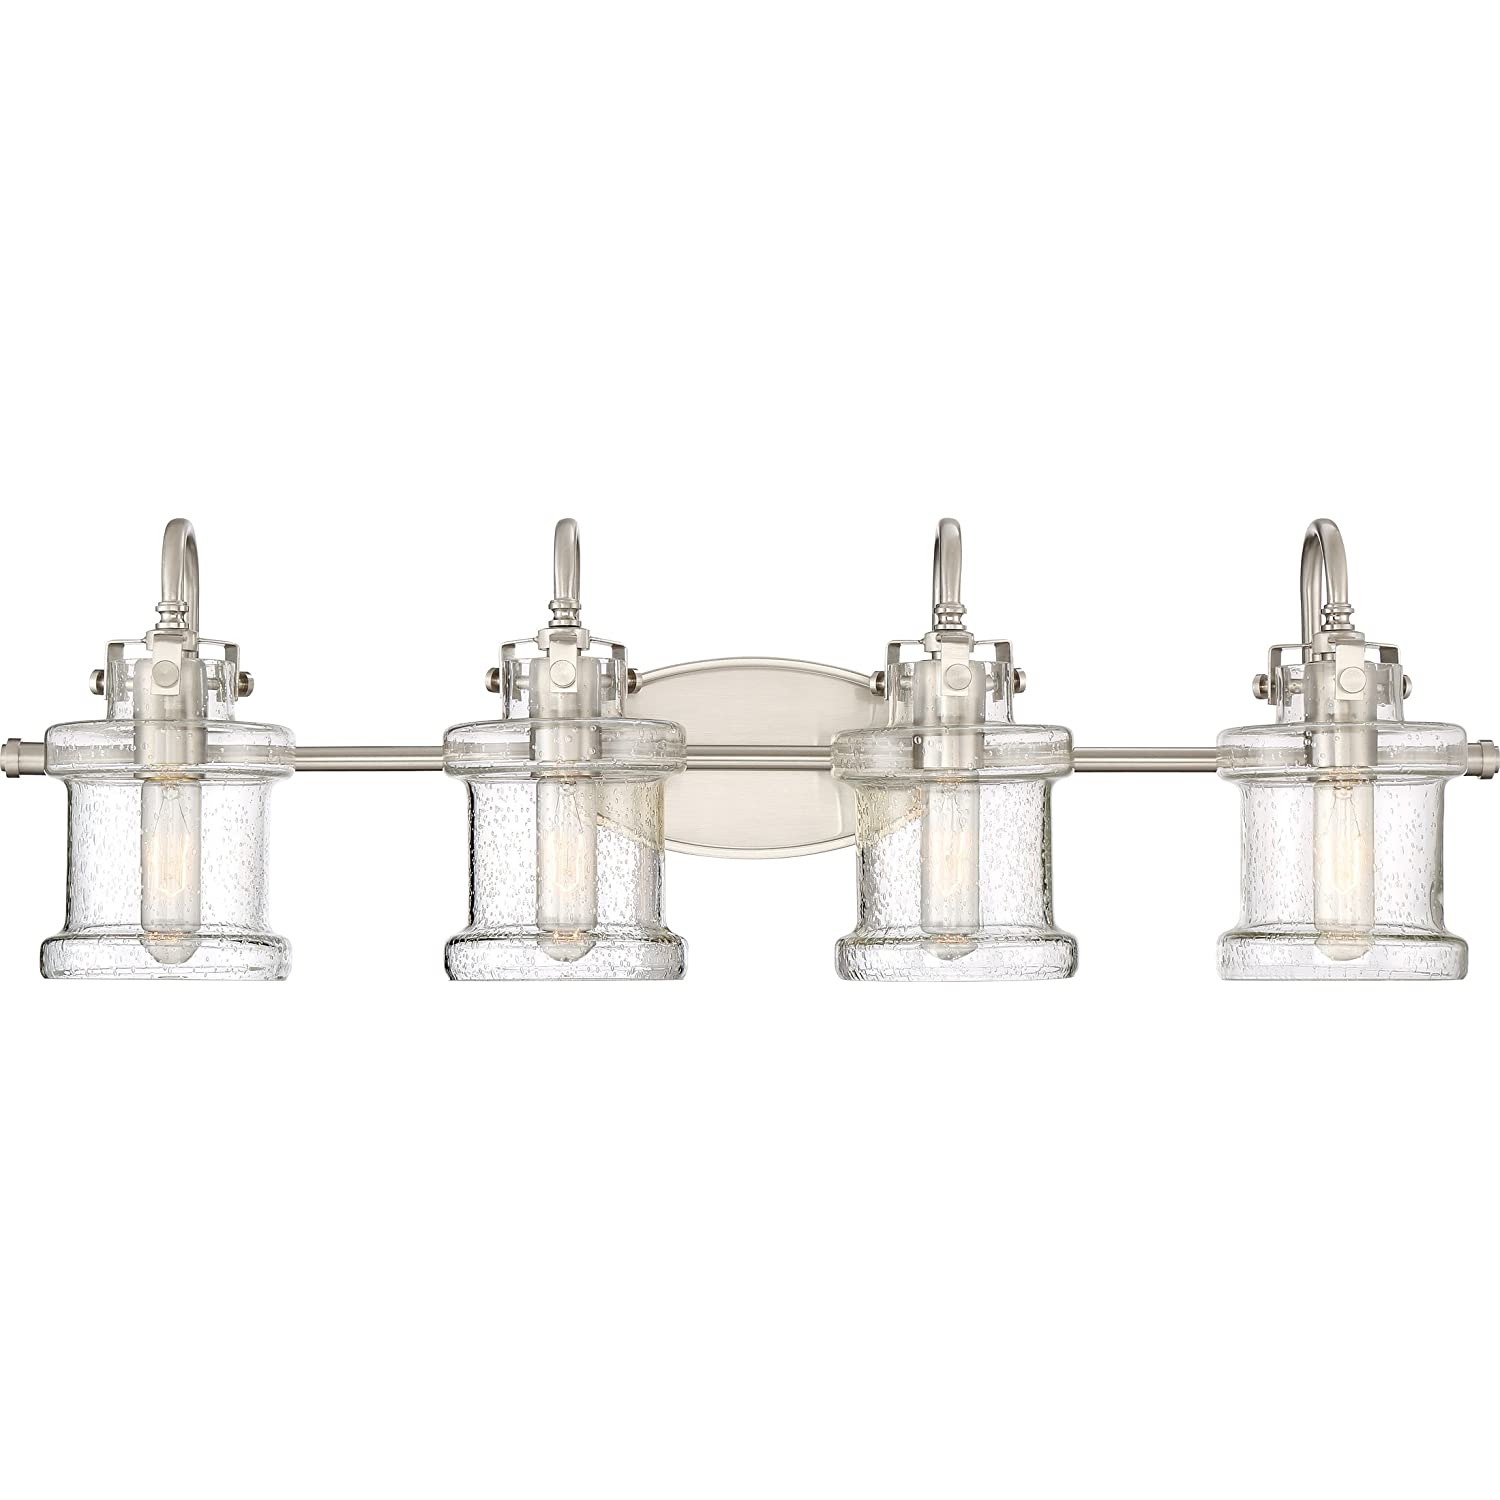 Quoizel DNY8604BN Danbury Vanity Bath Lighting, 4-Light, 400 Watts, Brushed Nickel 10 H x 32 W